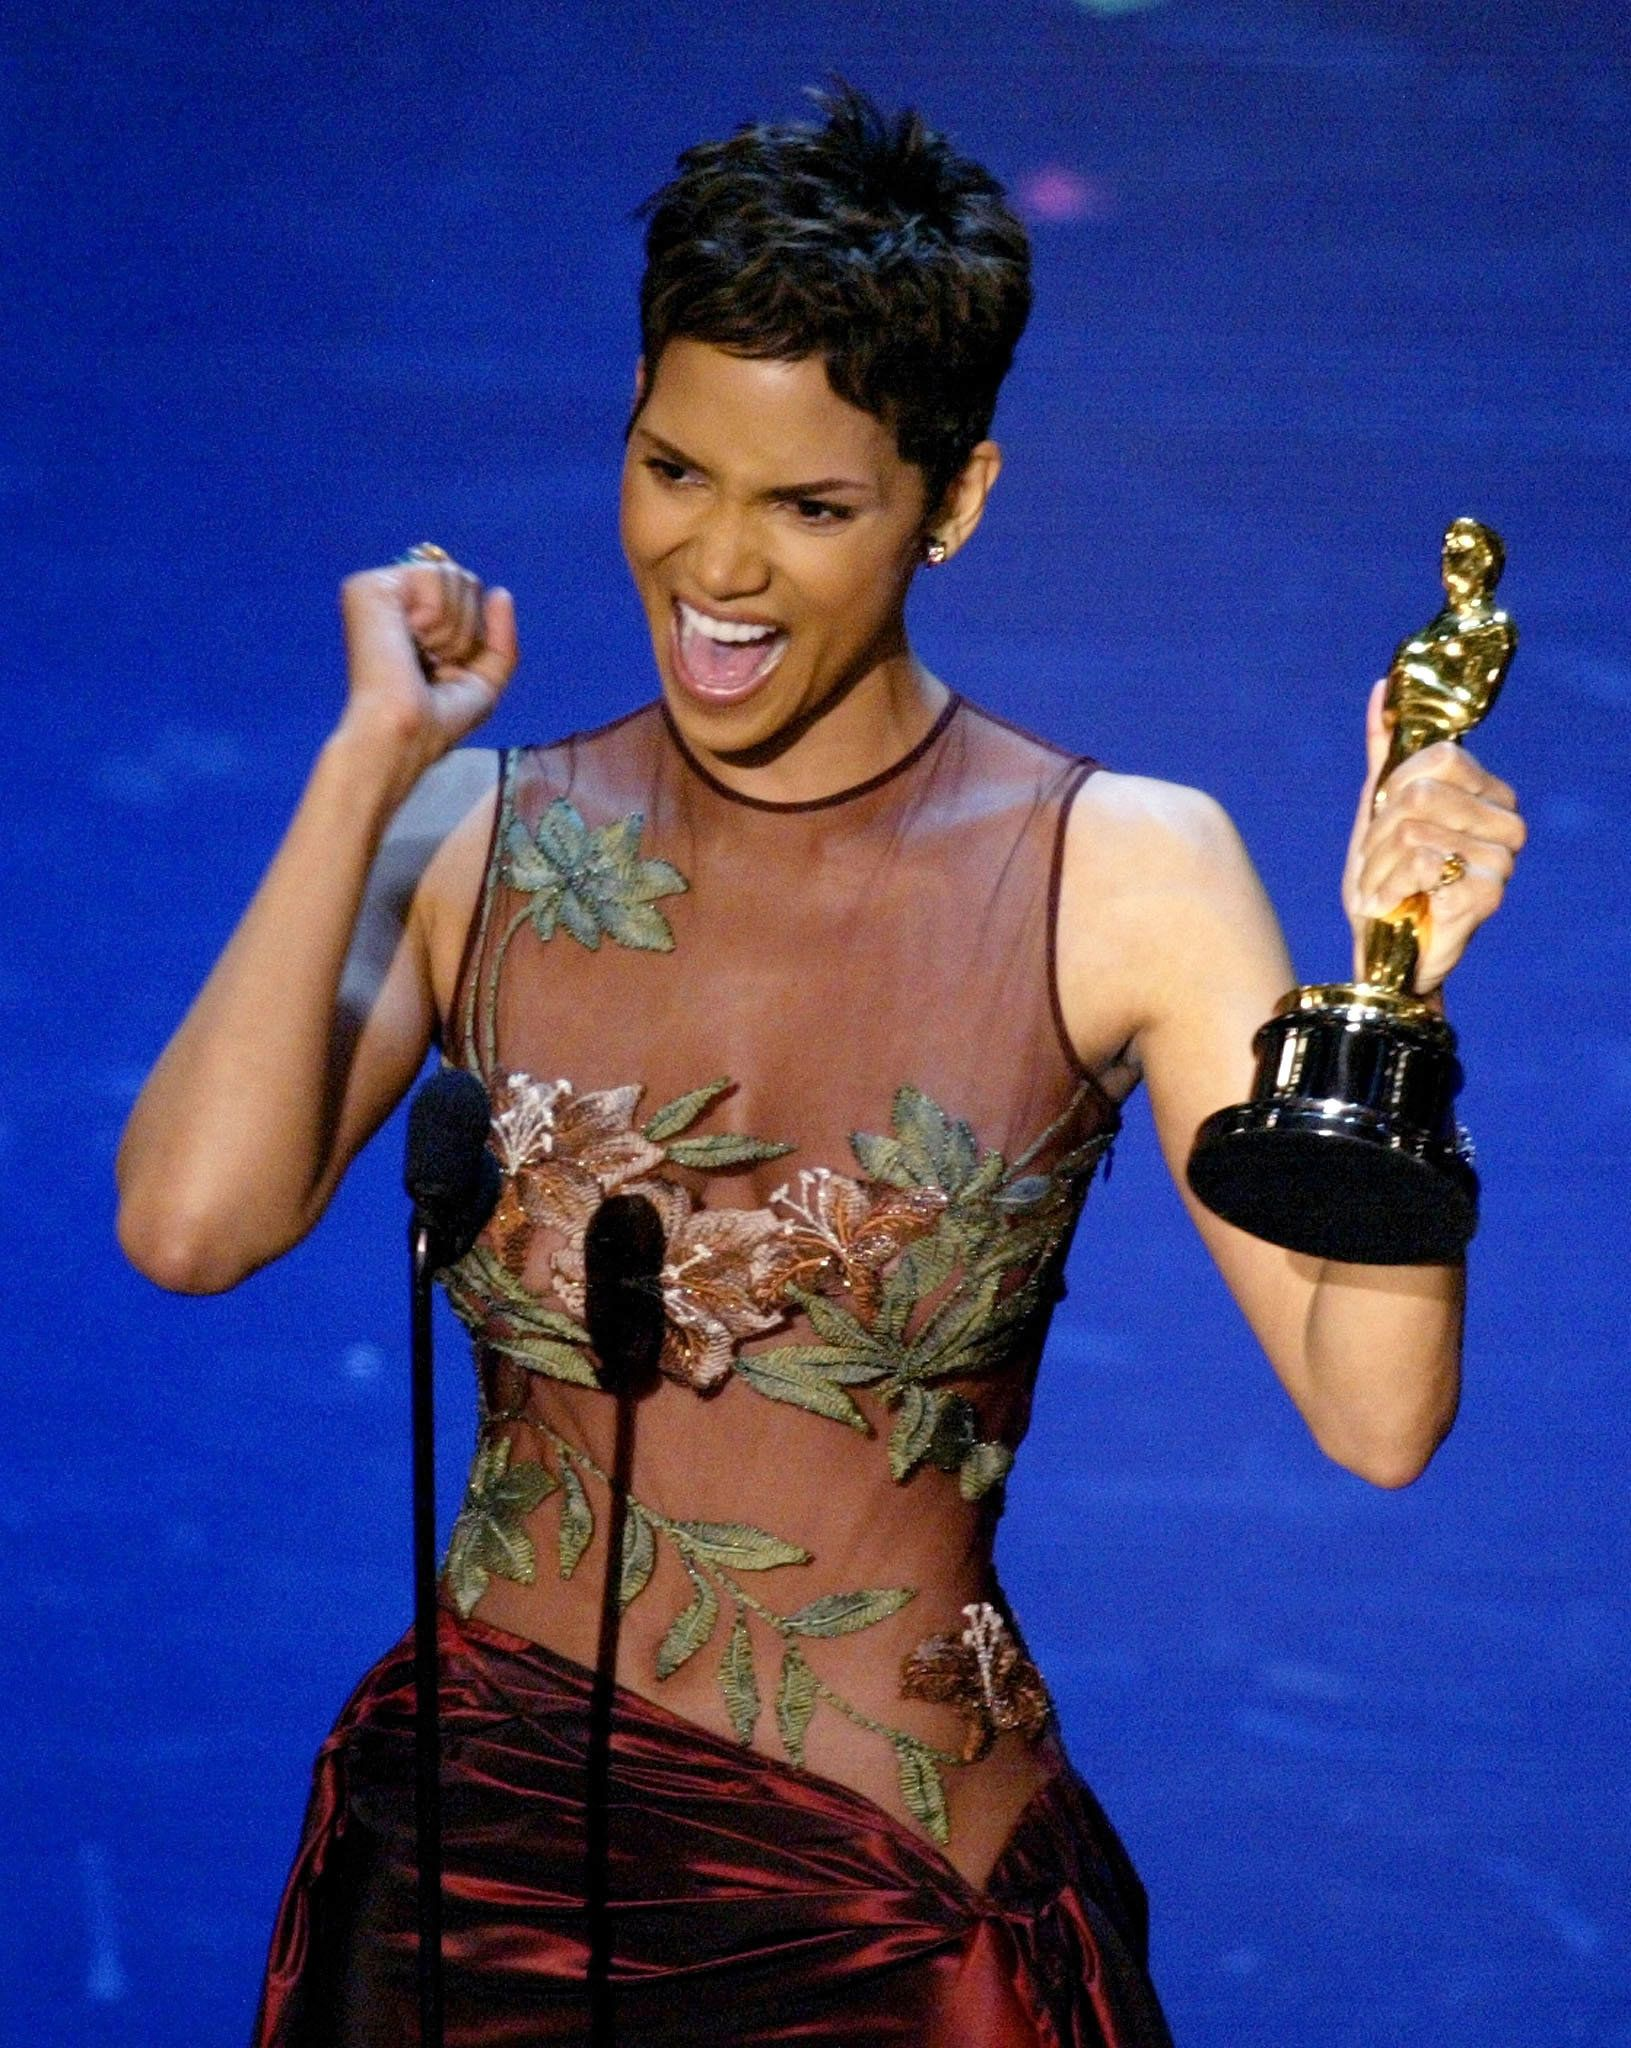 Halle Berry reacts to winning the Oscar for Best Actress during the 74th annual Academy Awards.